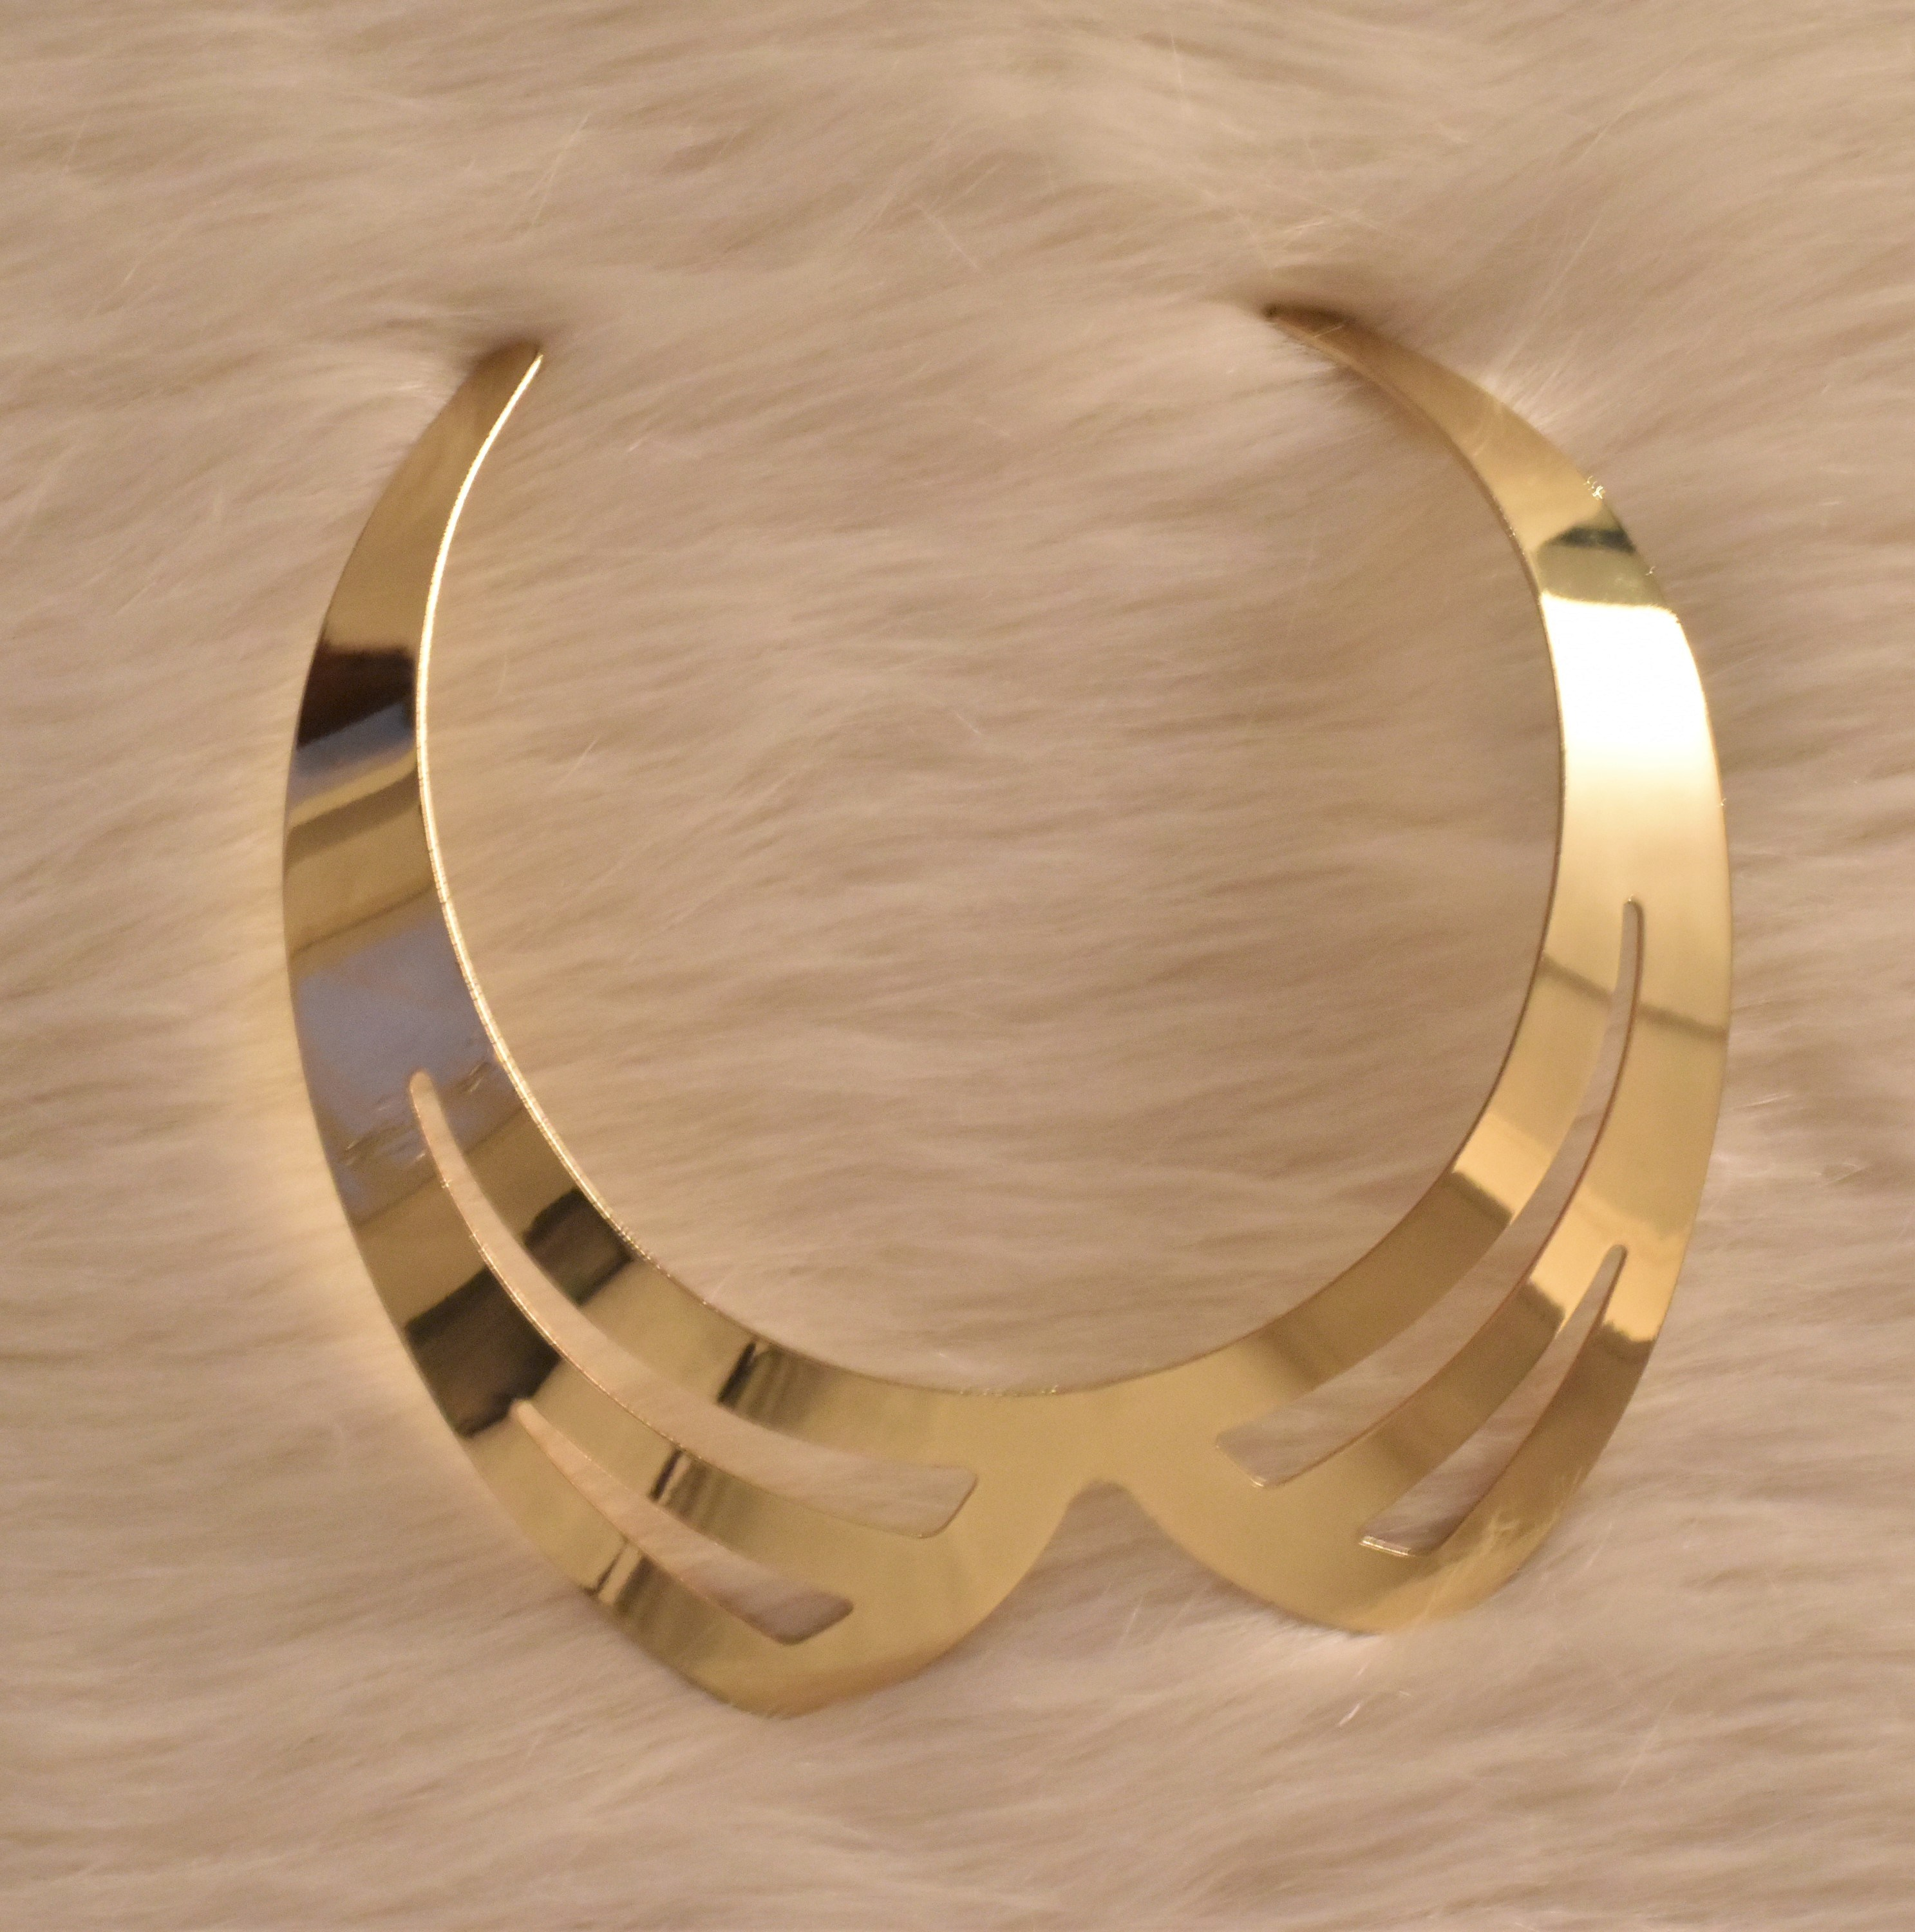 Golden Collar Fashionable Choker Necklace from Grab Your Garb